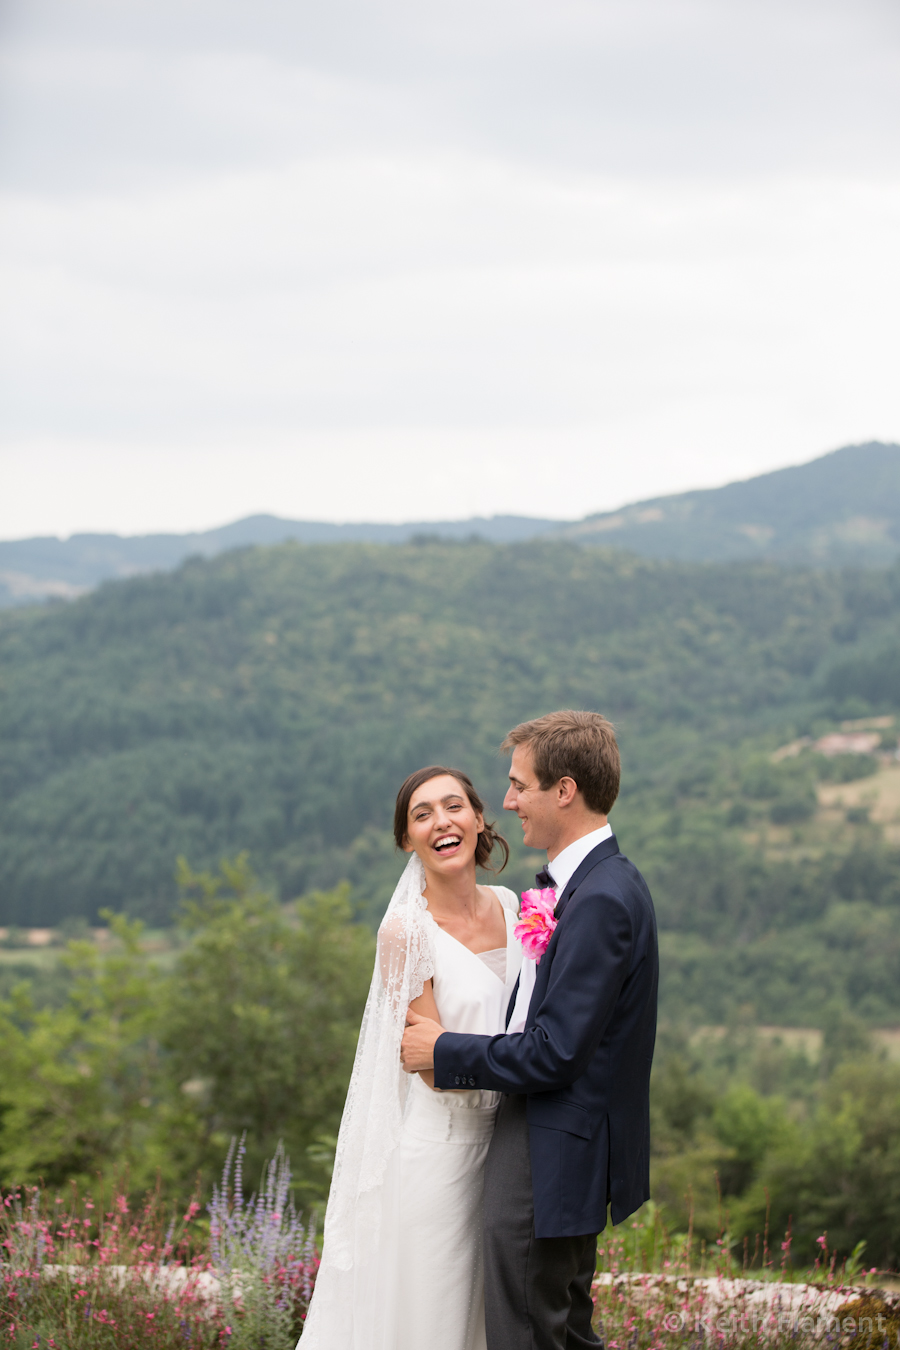 keith-flament-photographe-reportage-mariage-ardèche-114